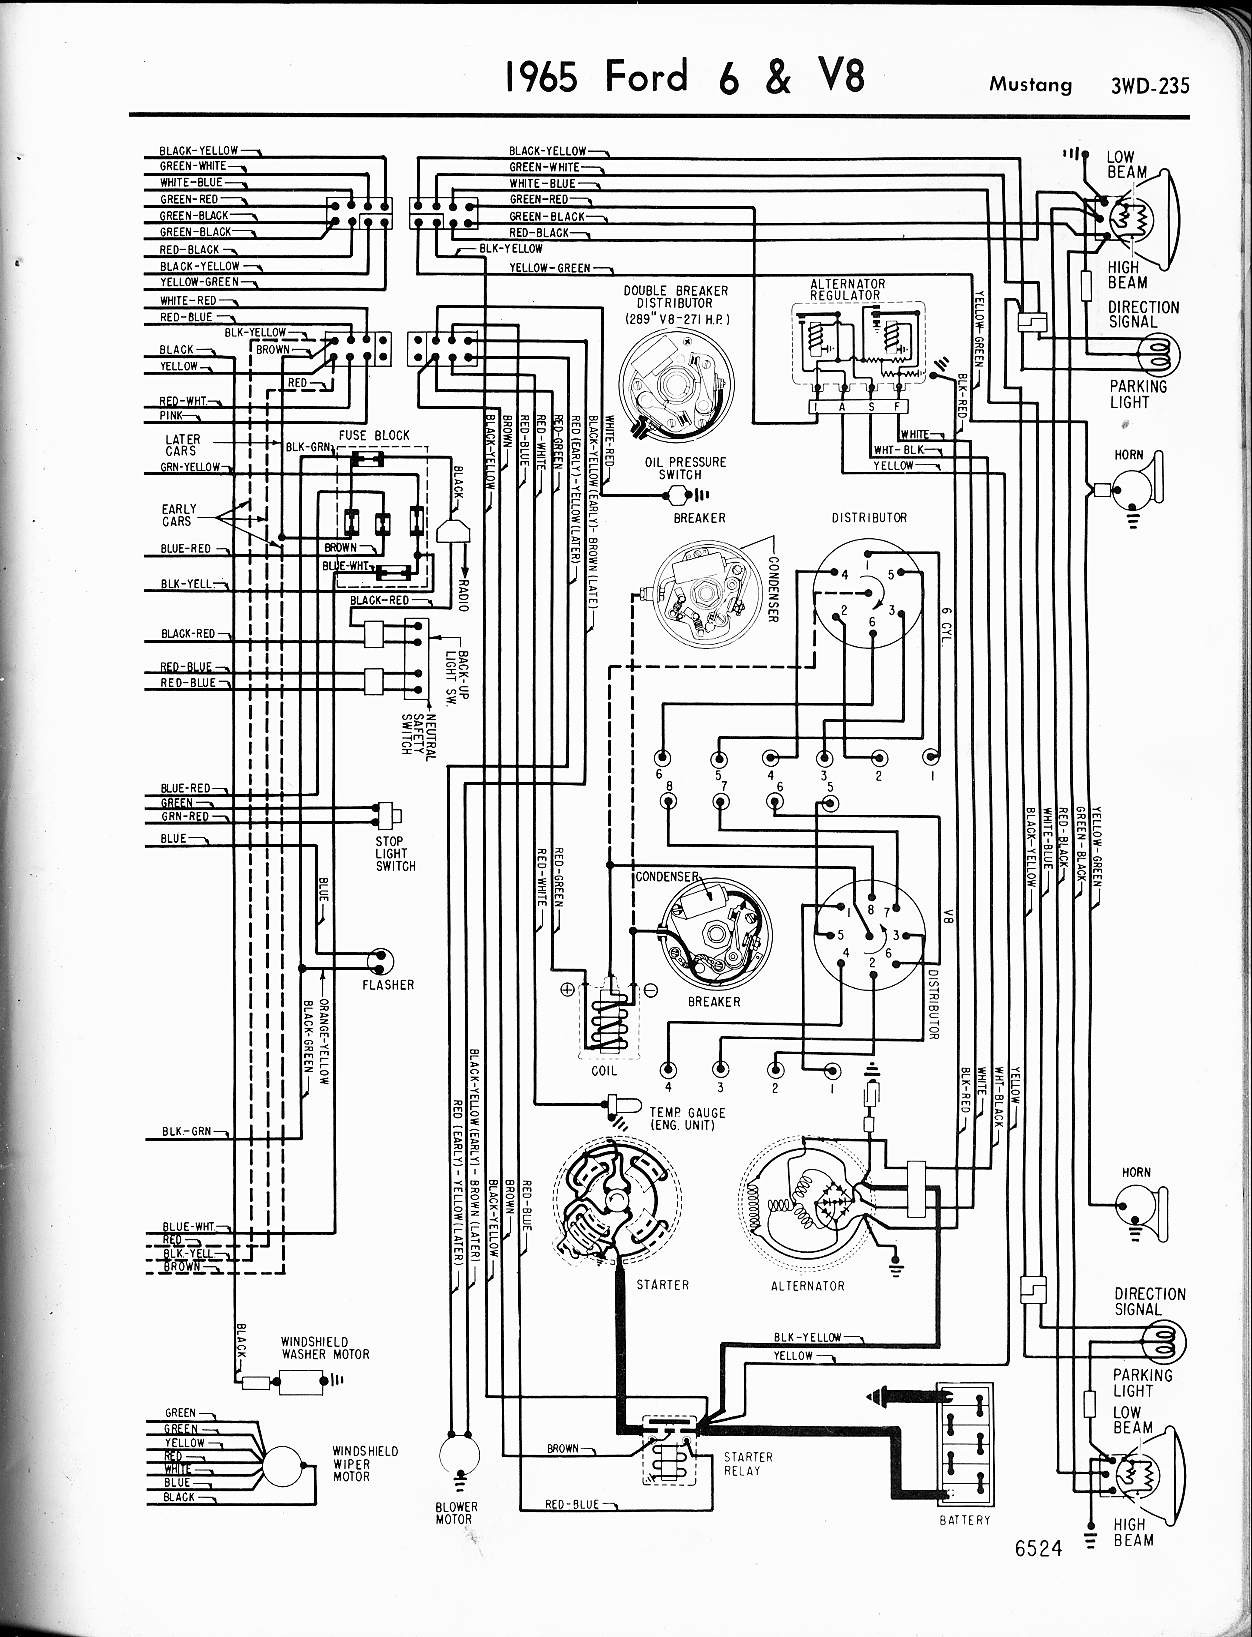 Ford Think Instrument Cluster Schematic